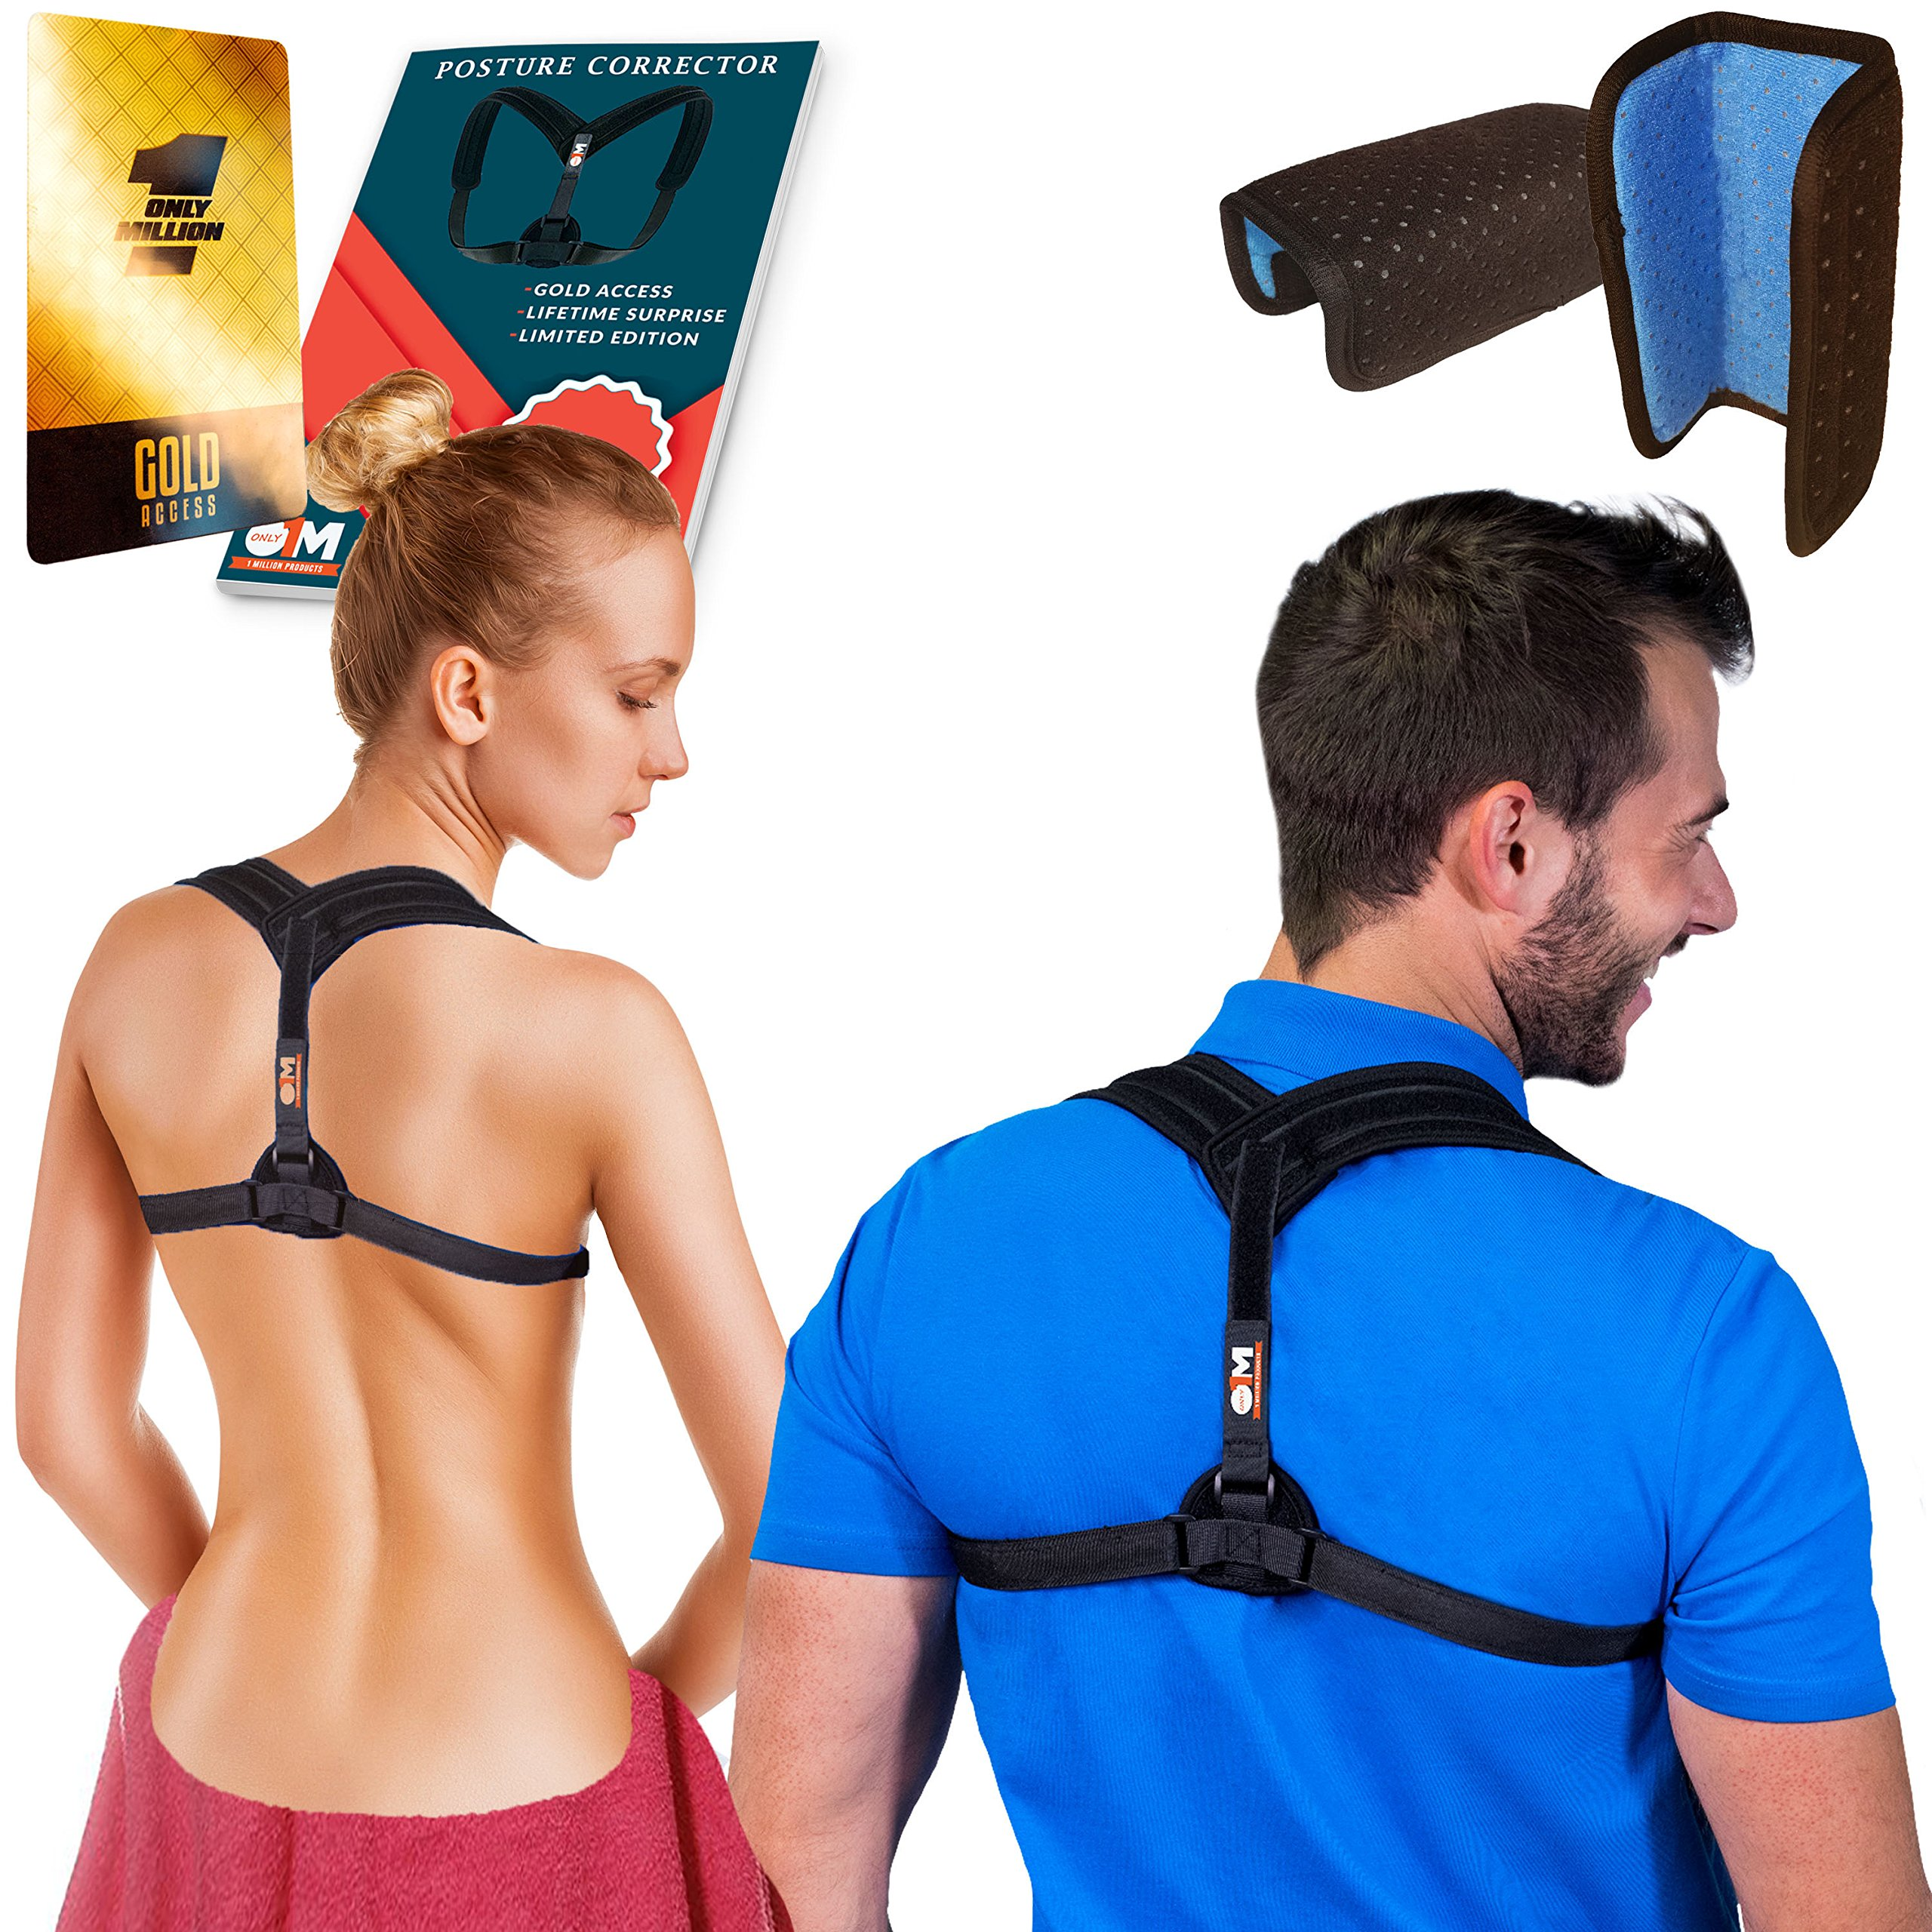 Posture Corrector for Women & Men for Fix Upper Back Pain – Adjustable Posture Brace for Improve Bad Posture | Thoracic Kyphosis Brace | Posture Support (Black/Black)